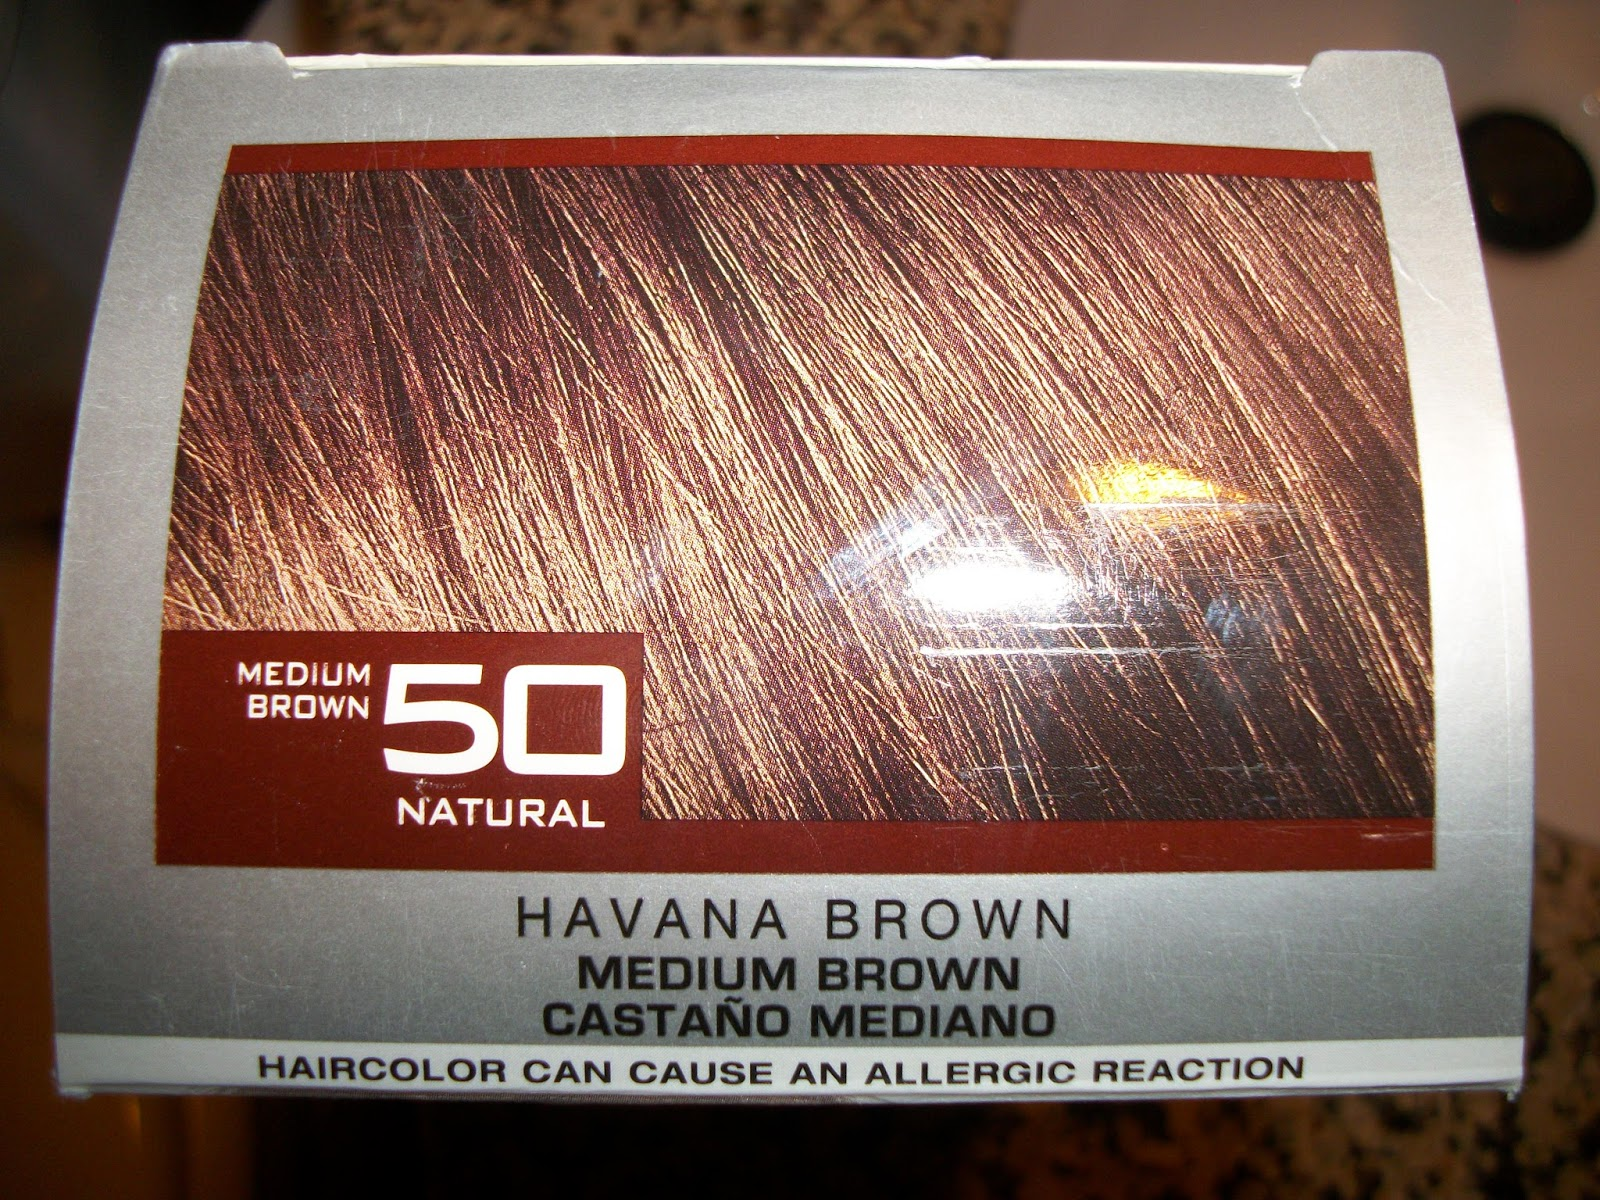 It Promised Dimension So I Bought In What Estimated To Be My Regular Color Which Is A Darkish Brown With Reddish Tones Medium Havana